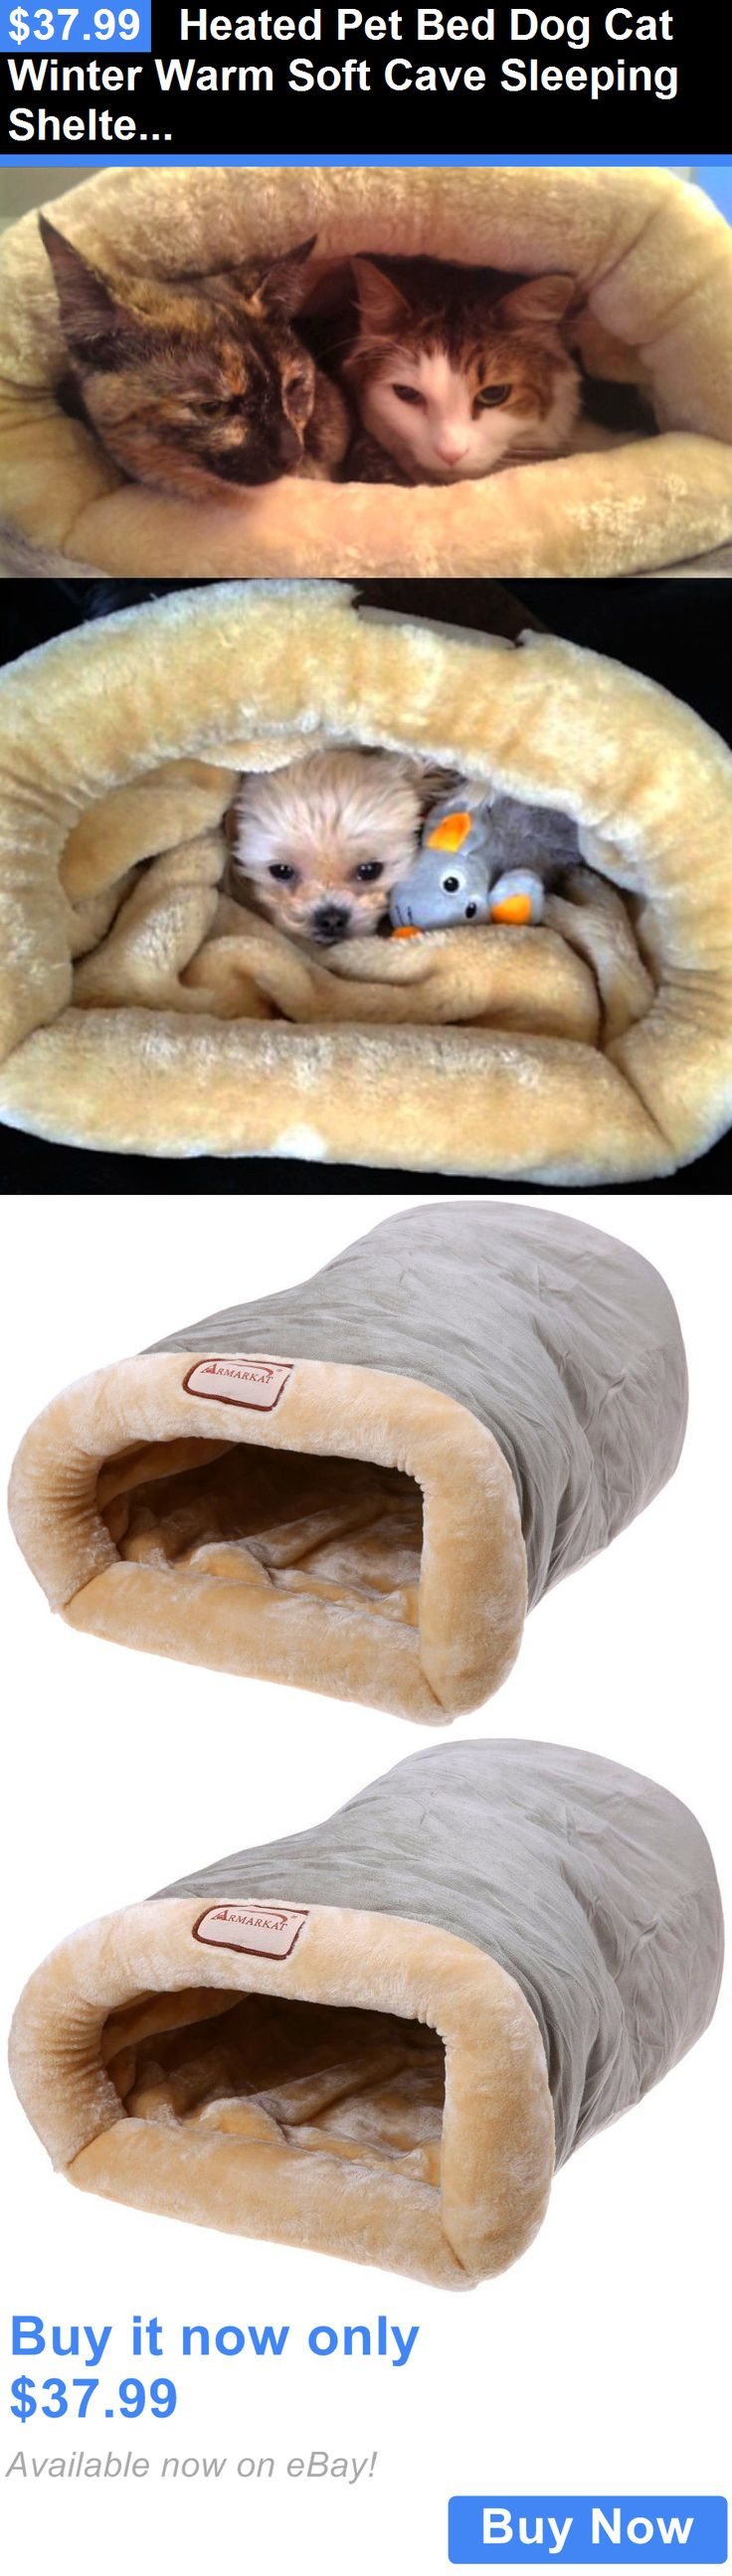 Pet Supplies: Heated Pet Bed Dog Cat Winter Warm Soft Cave Sleeping Shelter Rescue Plush Nest BUY IT NOW ONLY: $37.99